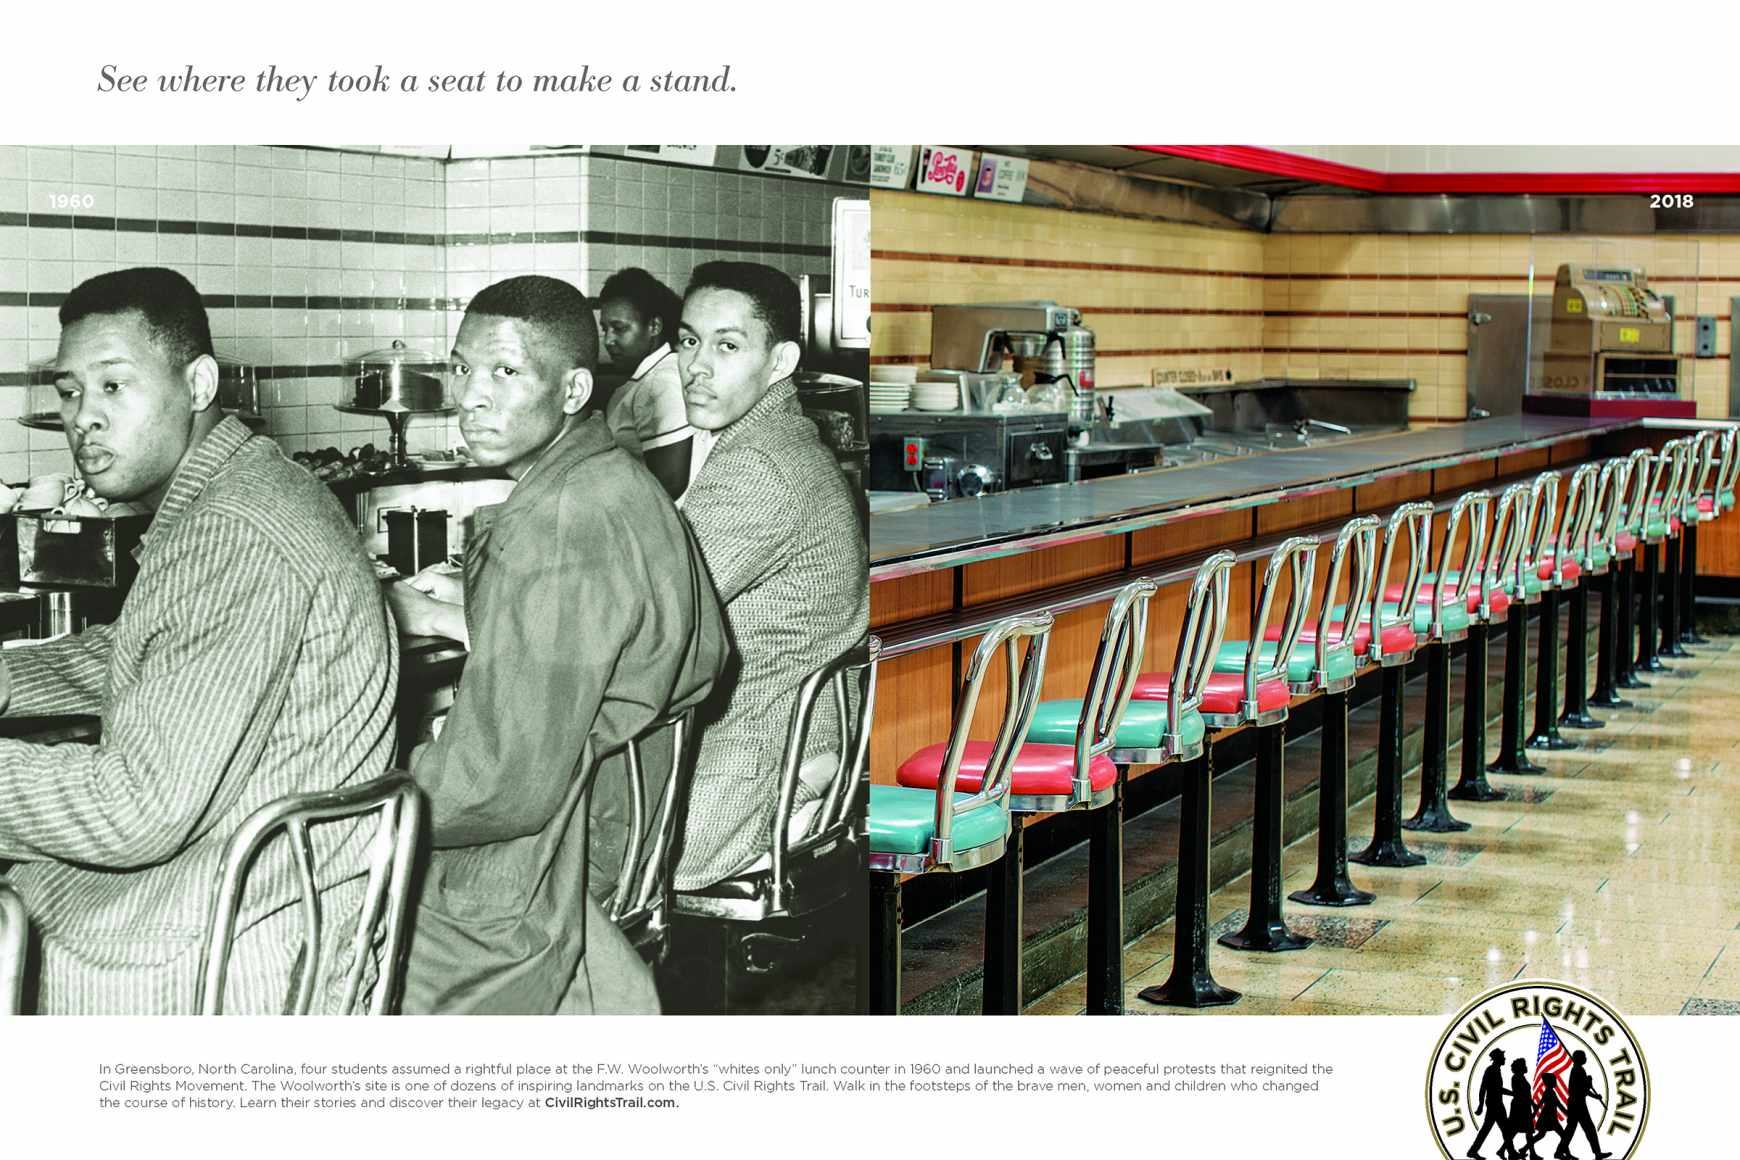 U.S. Civil Rights Trail Print Ad - Greensboro Four